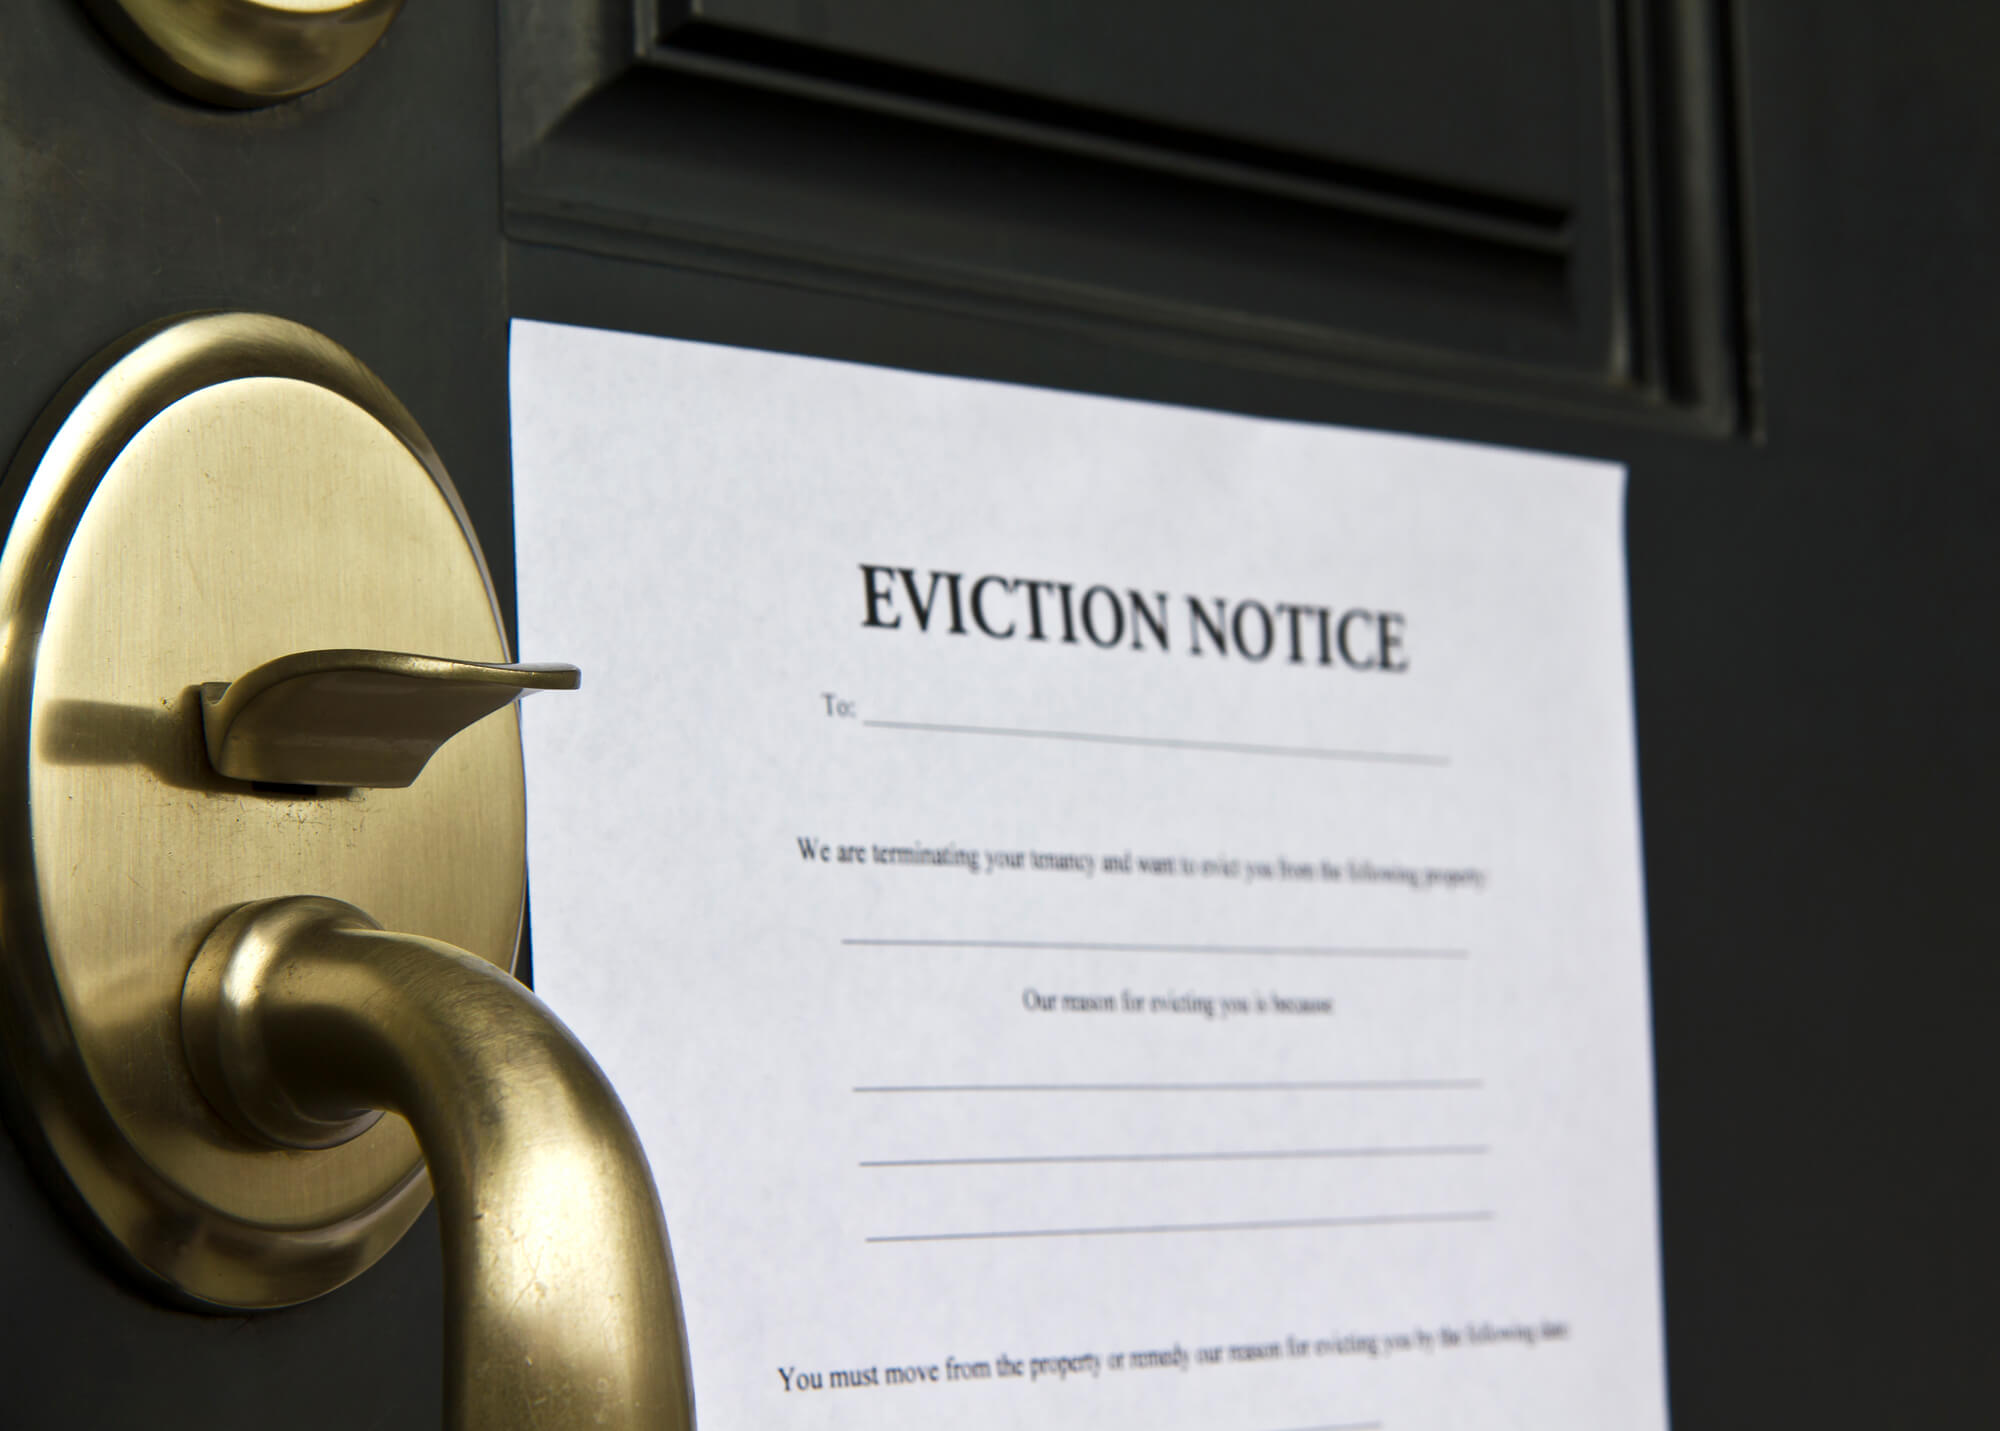 Eviction notice on front door